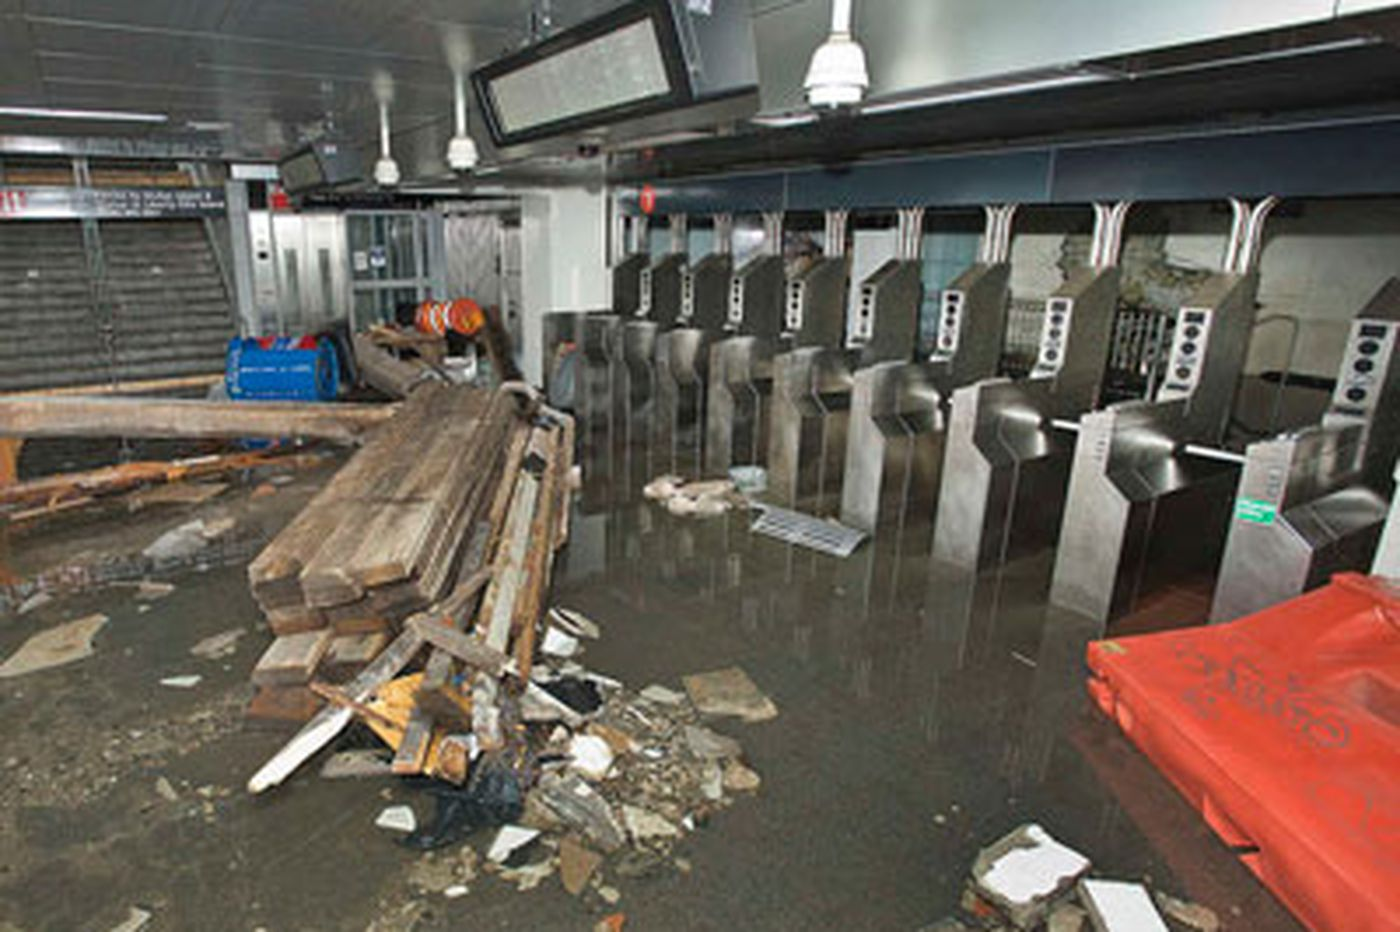 PhillyDeals: Hurricane Sandy may fuel public-private partnerships in rebuilding efforts